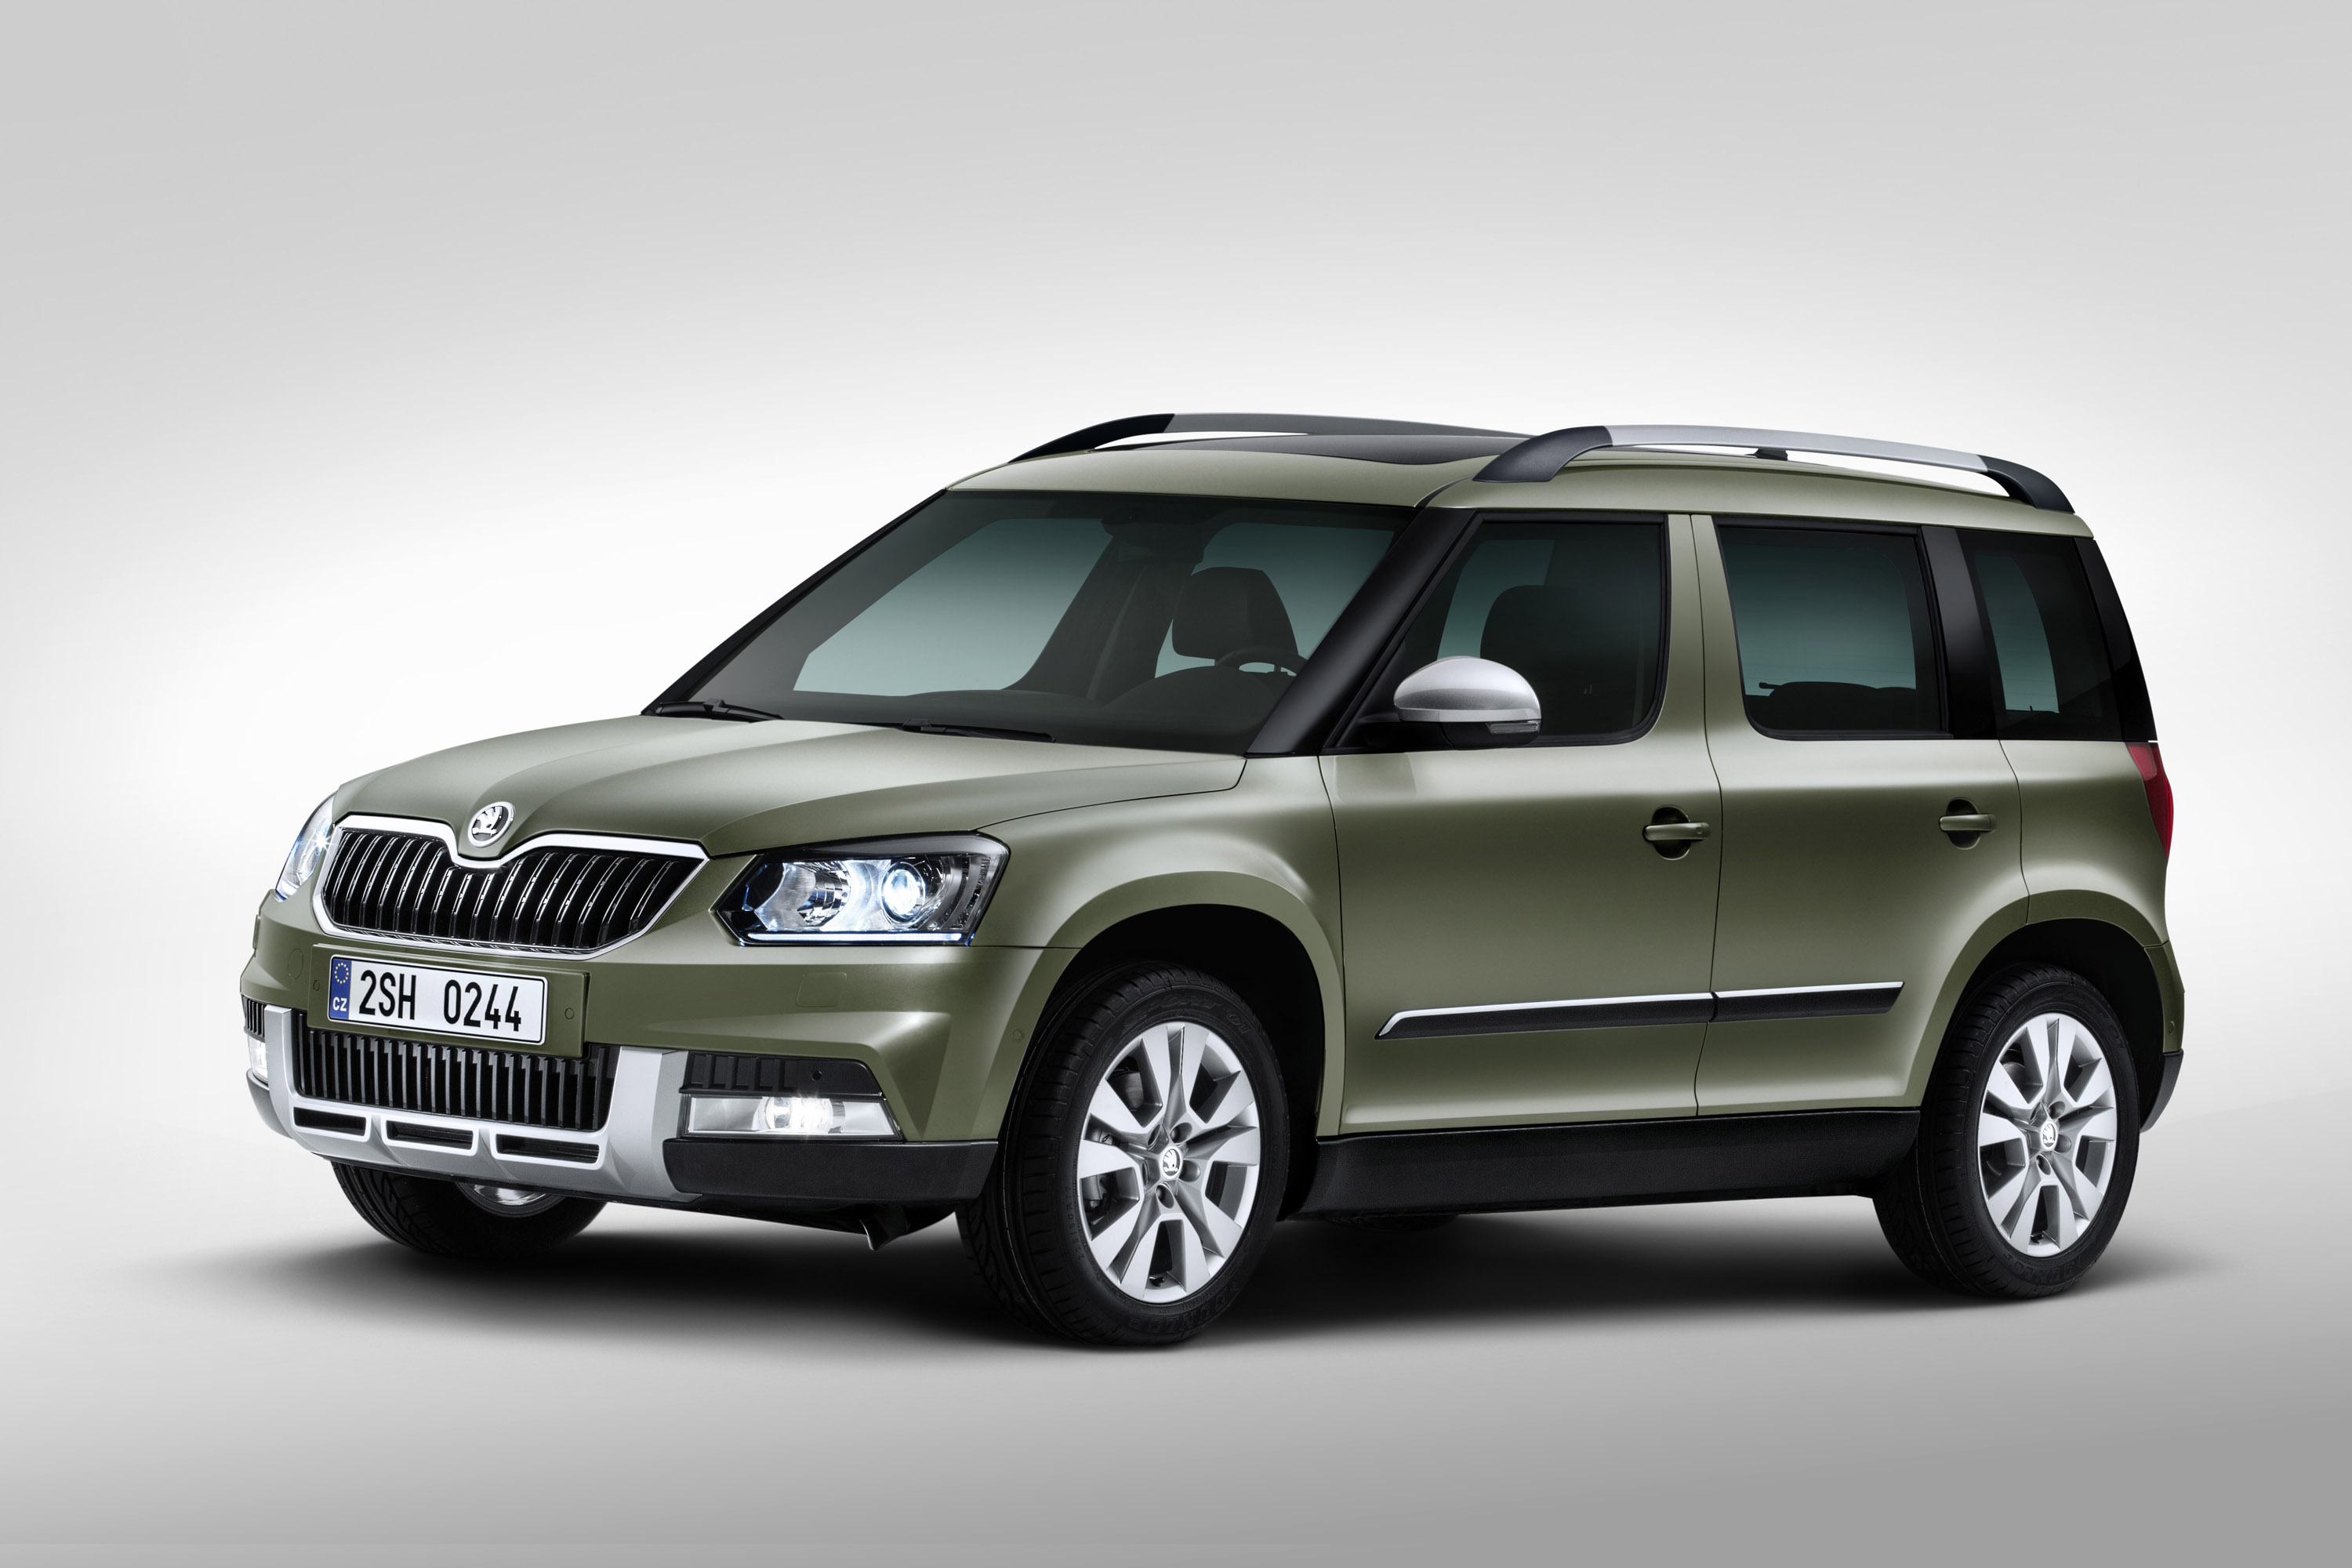 2014 skoda yeti hd pictures. Black Bedroom Furniture Sets. Home Design Ideas